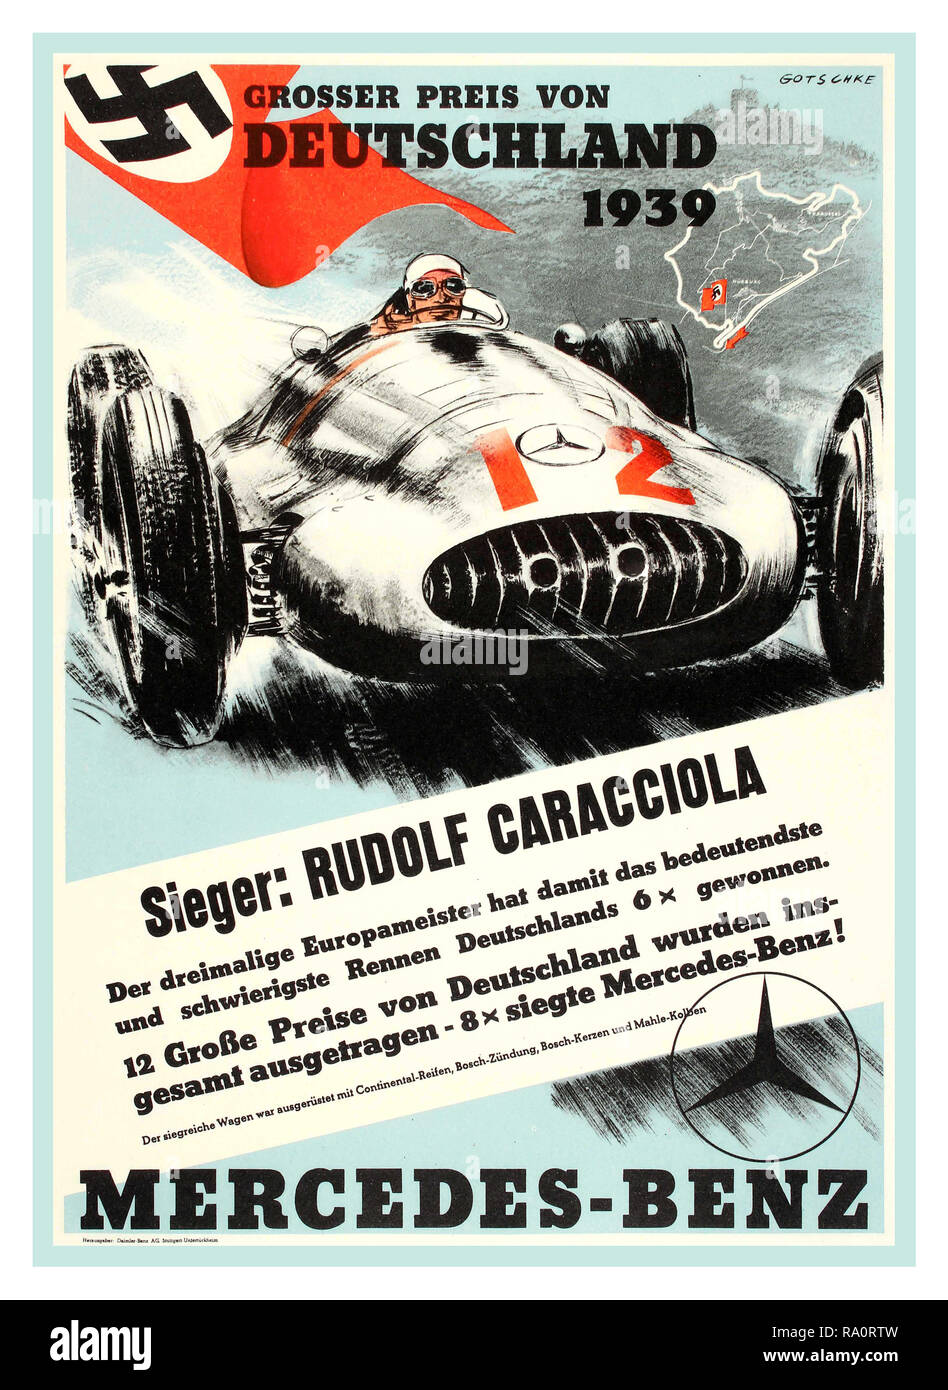 Vintage 1939 Nazi Germany Motor racing Poster with Swastika Flag 'Grosser Preis von Deutschland 1939' - German Grand Prix Mercedes Benz motor racing poster. Racing motorsport poster promoting Mercedes-Benz at the Grosser Preis von Deutschland 1939, featuring the winning driver German race driver Rudolph Caracciola driving a Number 12 Mercedes Silver Arrow - Stock Image